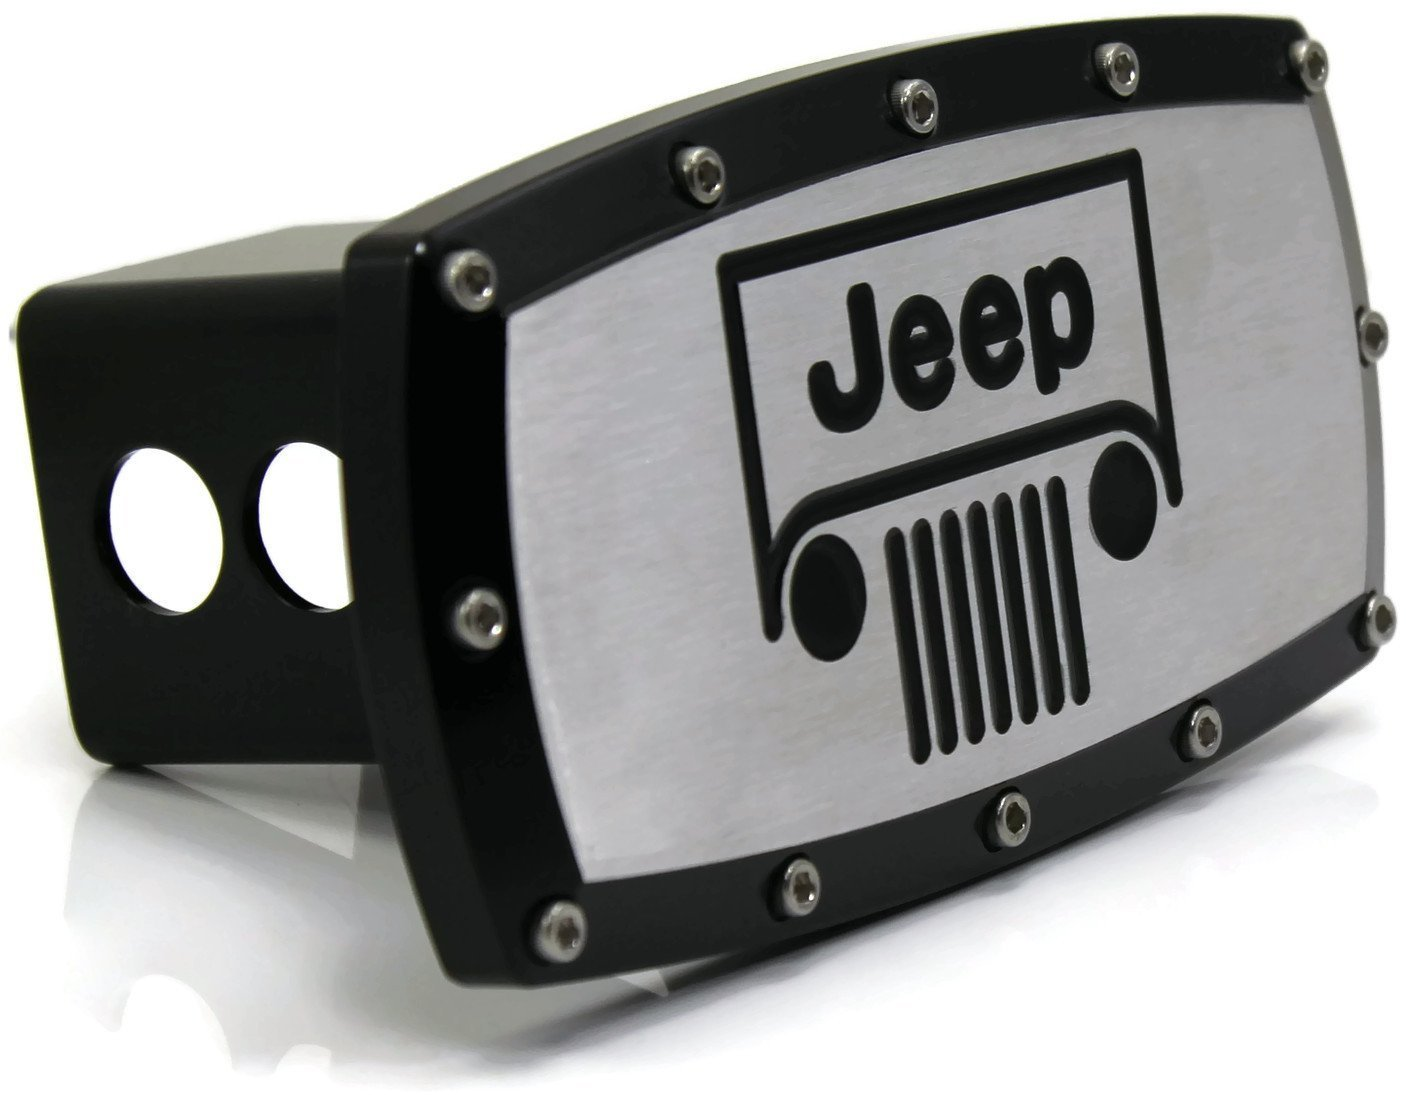 Jeep Vehicle Logo 2'' Tow Hitch Cover Plug Engraved Billet Black Powder Coated by Elite Automotive Car Beyond Store